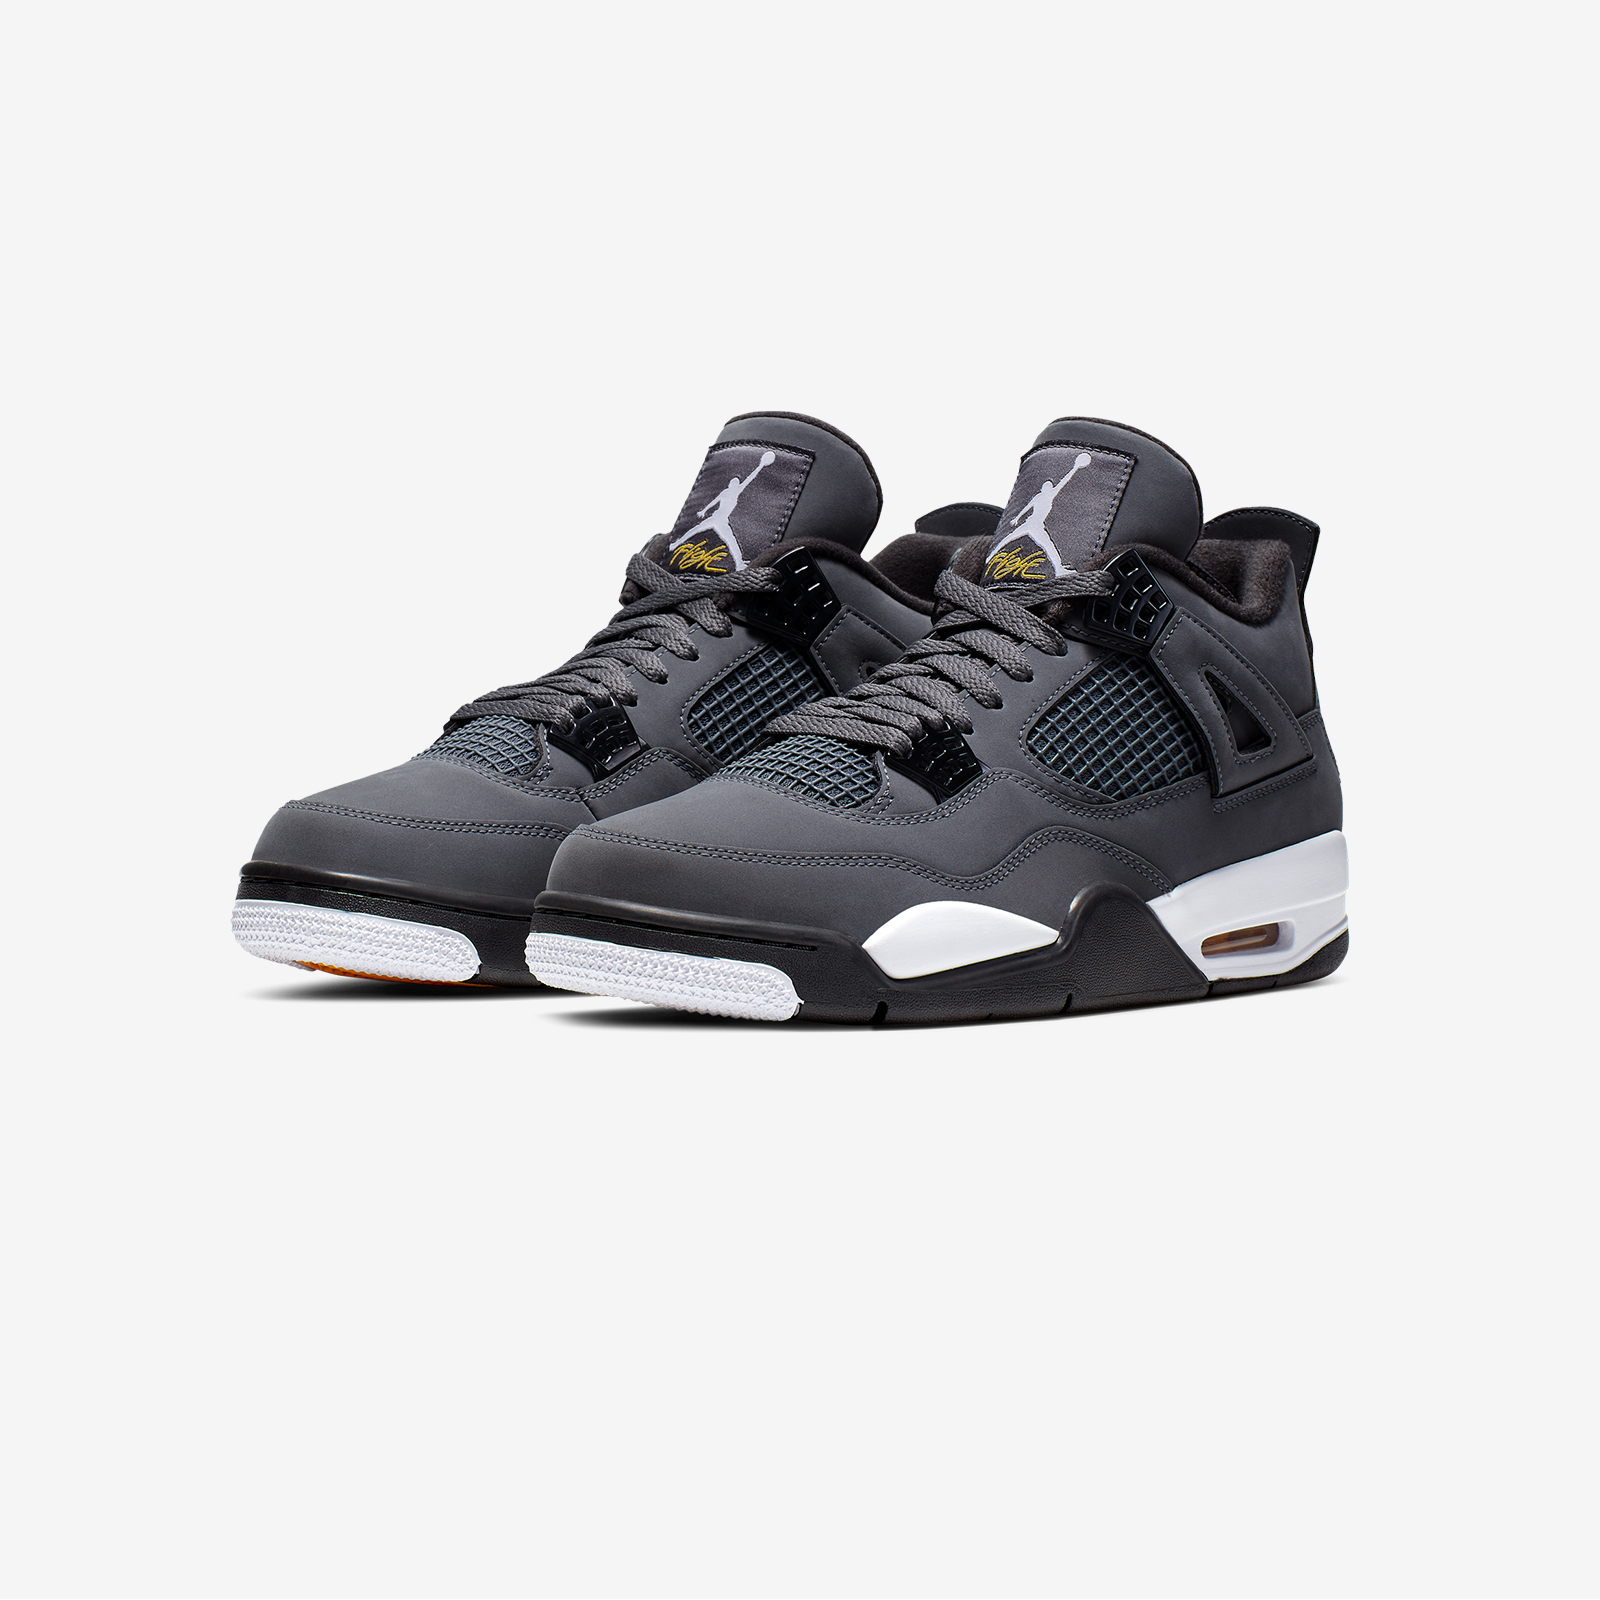 308497 007 Air Jordan 4 Retro Cool Grey 2